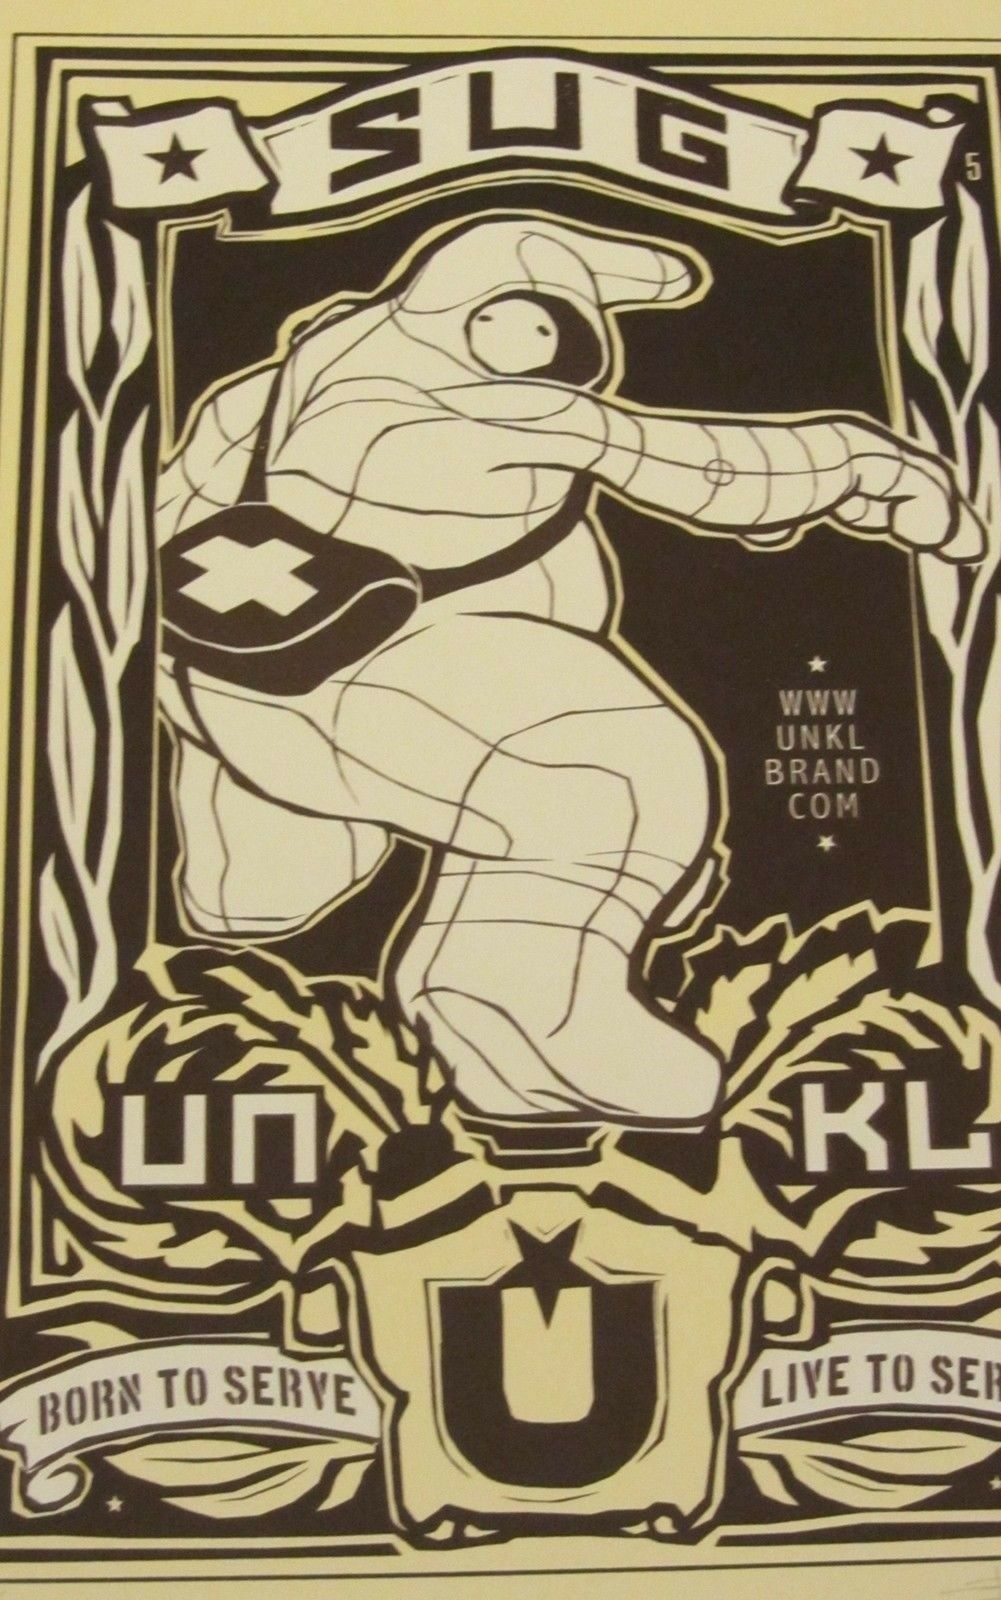 Print Poster - SUG UNKL - Signed & Numbered 8 of 40 - 15x22.5